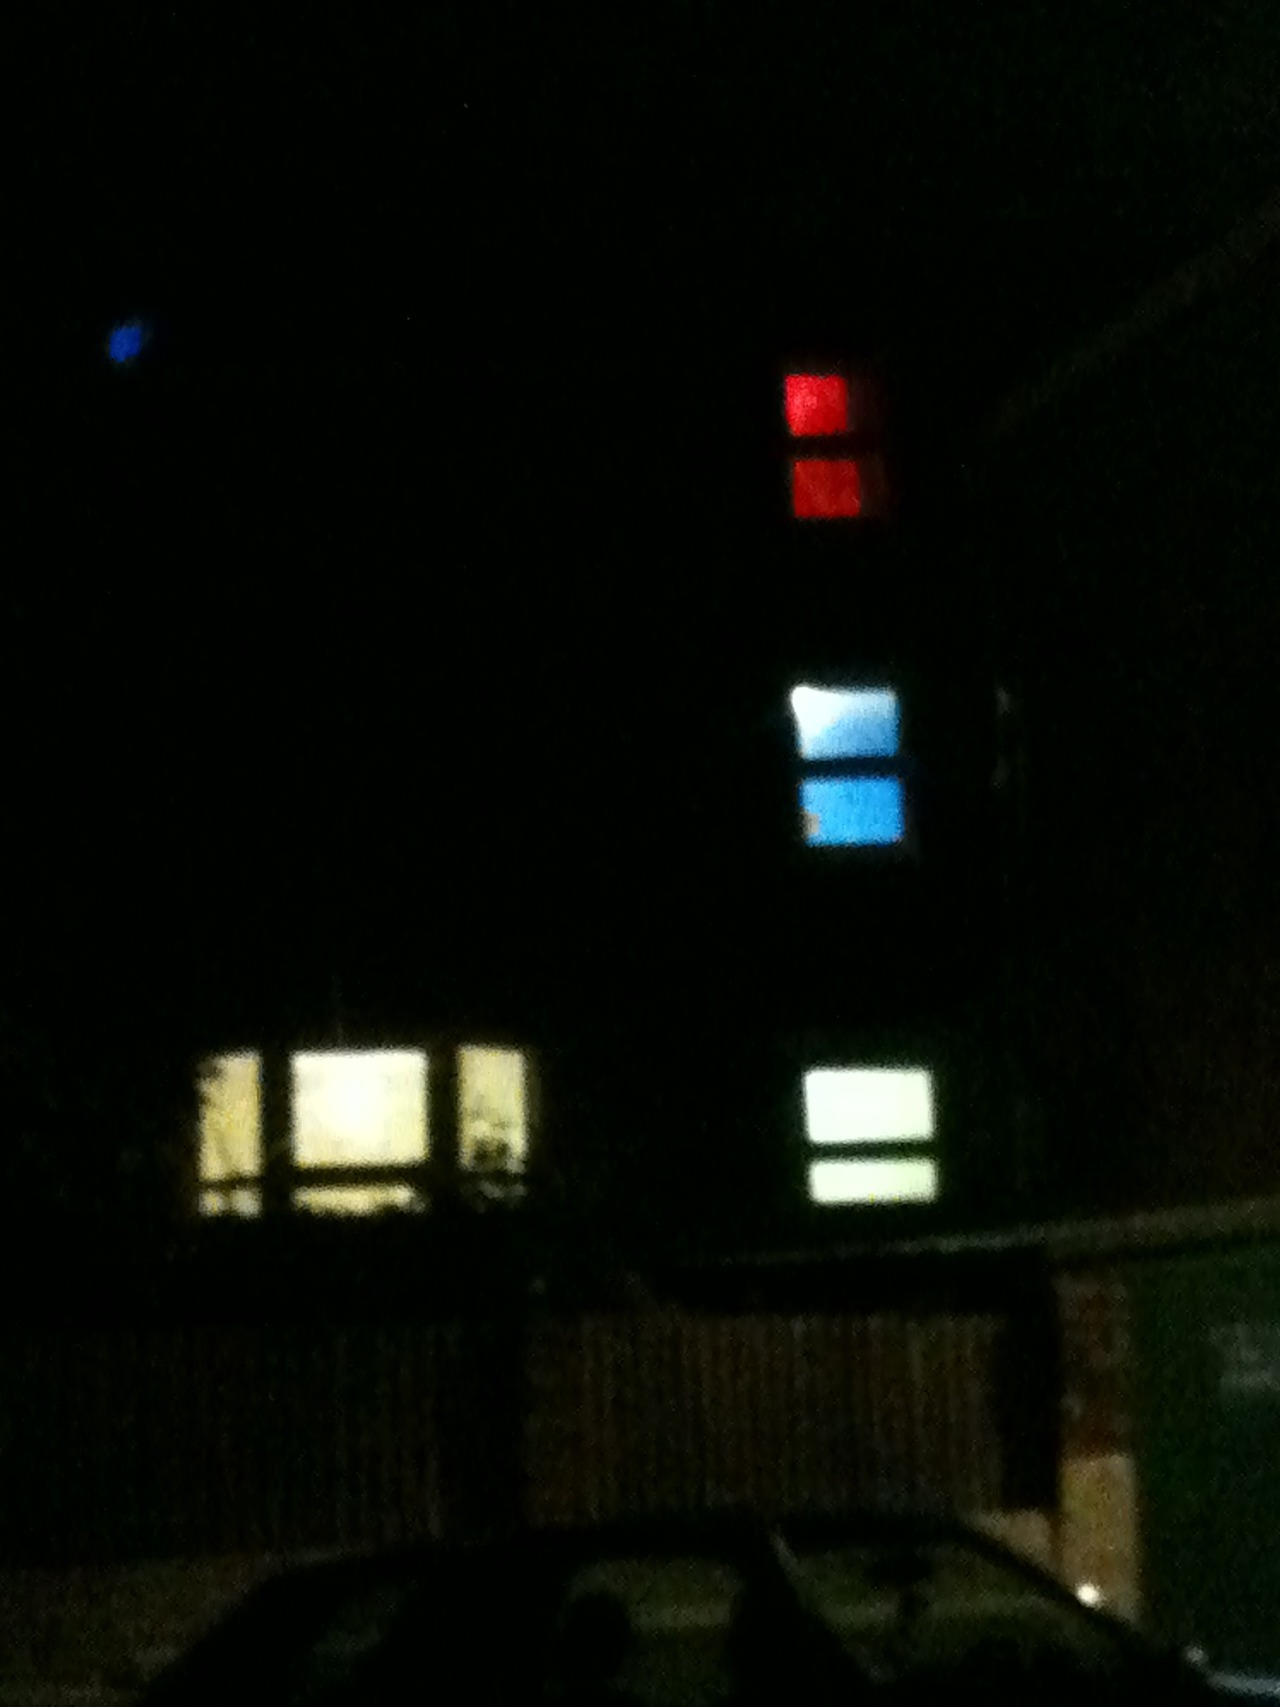 We passed this house in Peckham as we walked back from the pub the other night. Different coloured lights were emanating from the all the windows - obviously a supervillain lair (or den of iniquity).